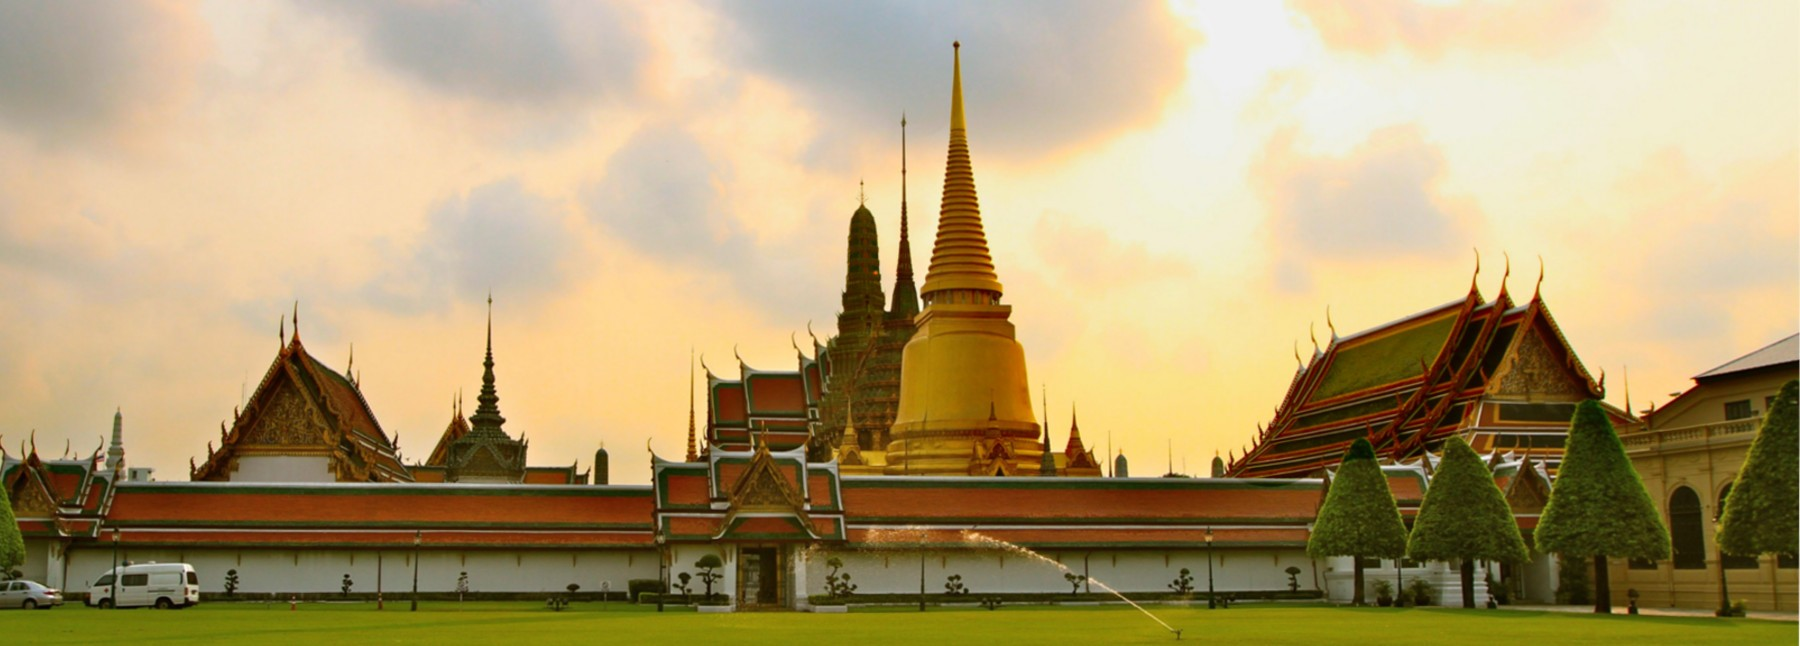 hotel-near-the-temple-of-the-emerald-buddha